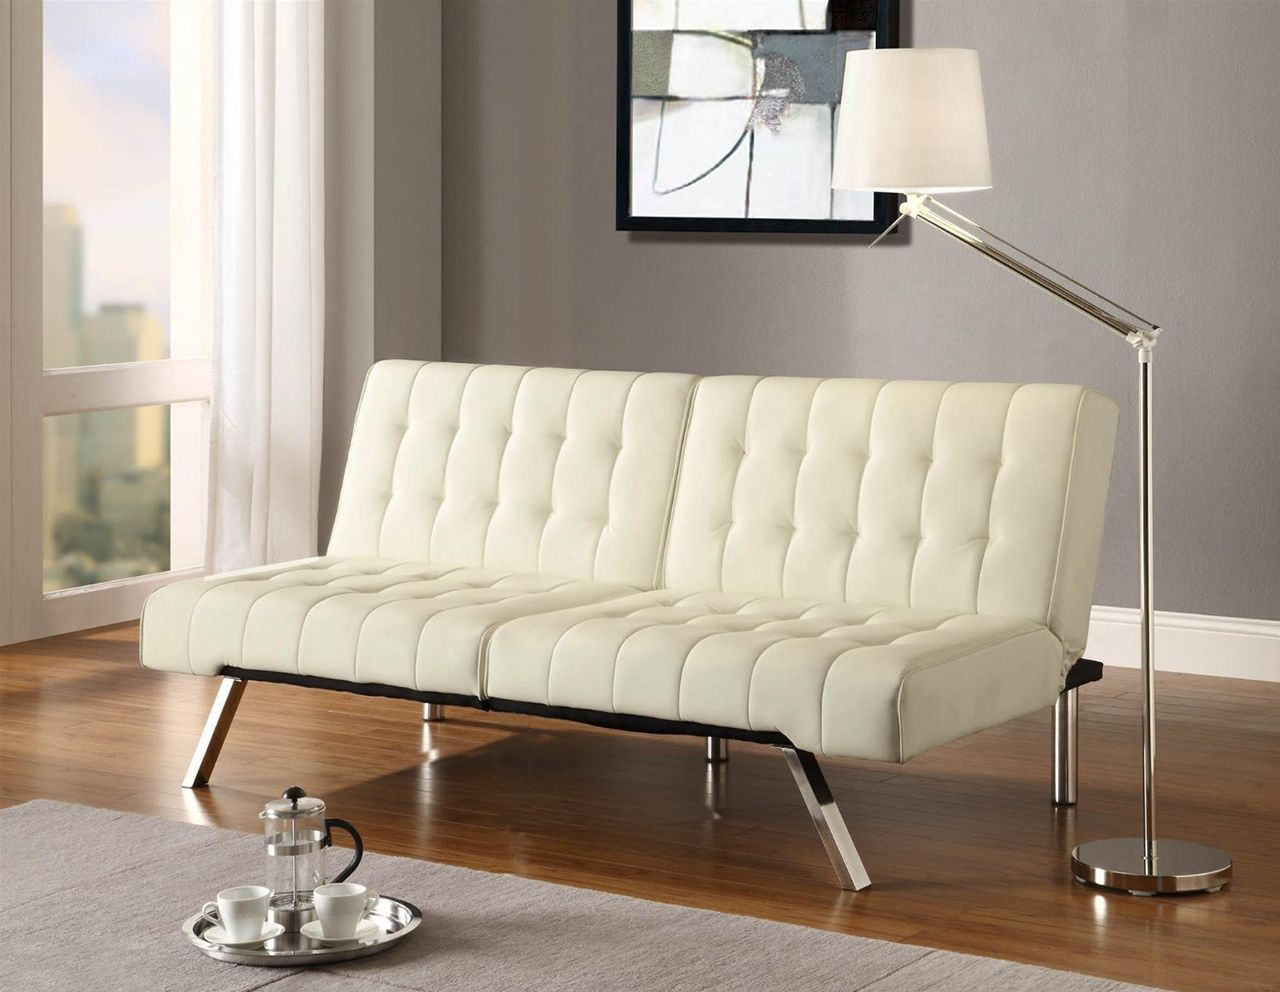 Image of: Futon Alternative Designs Ideas